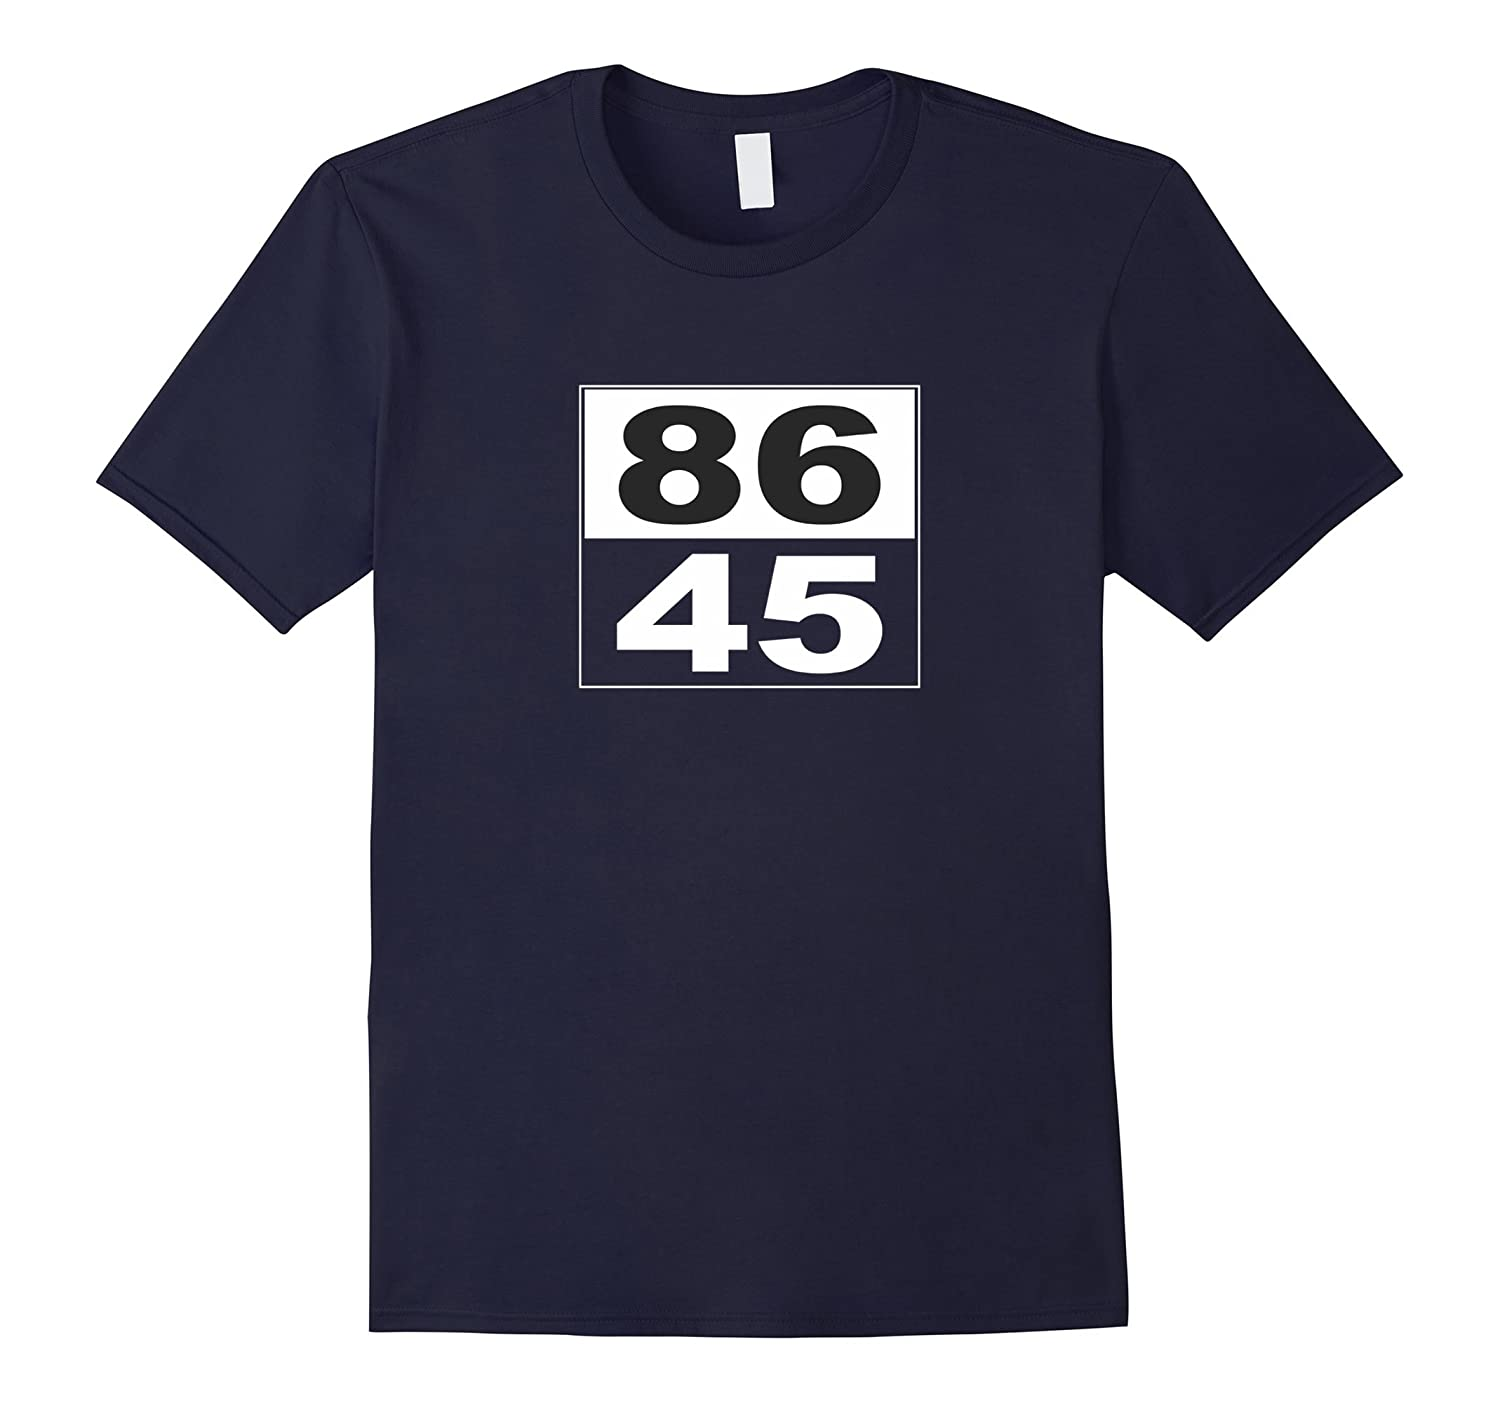 86 45 - Anti-Trump T-shirt - 86 the 45th President-RT